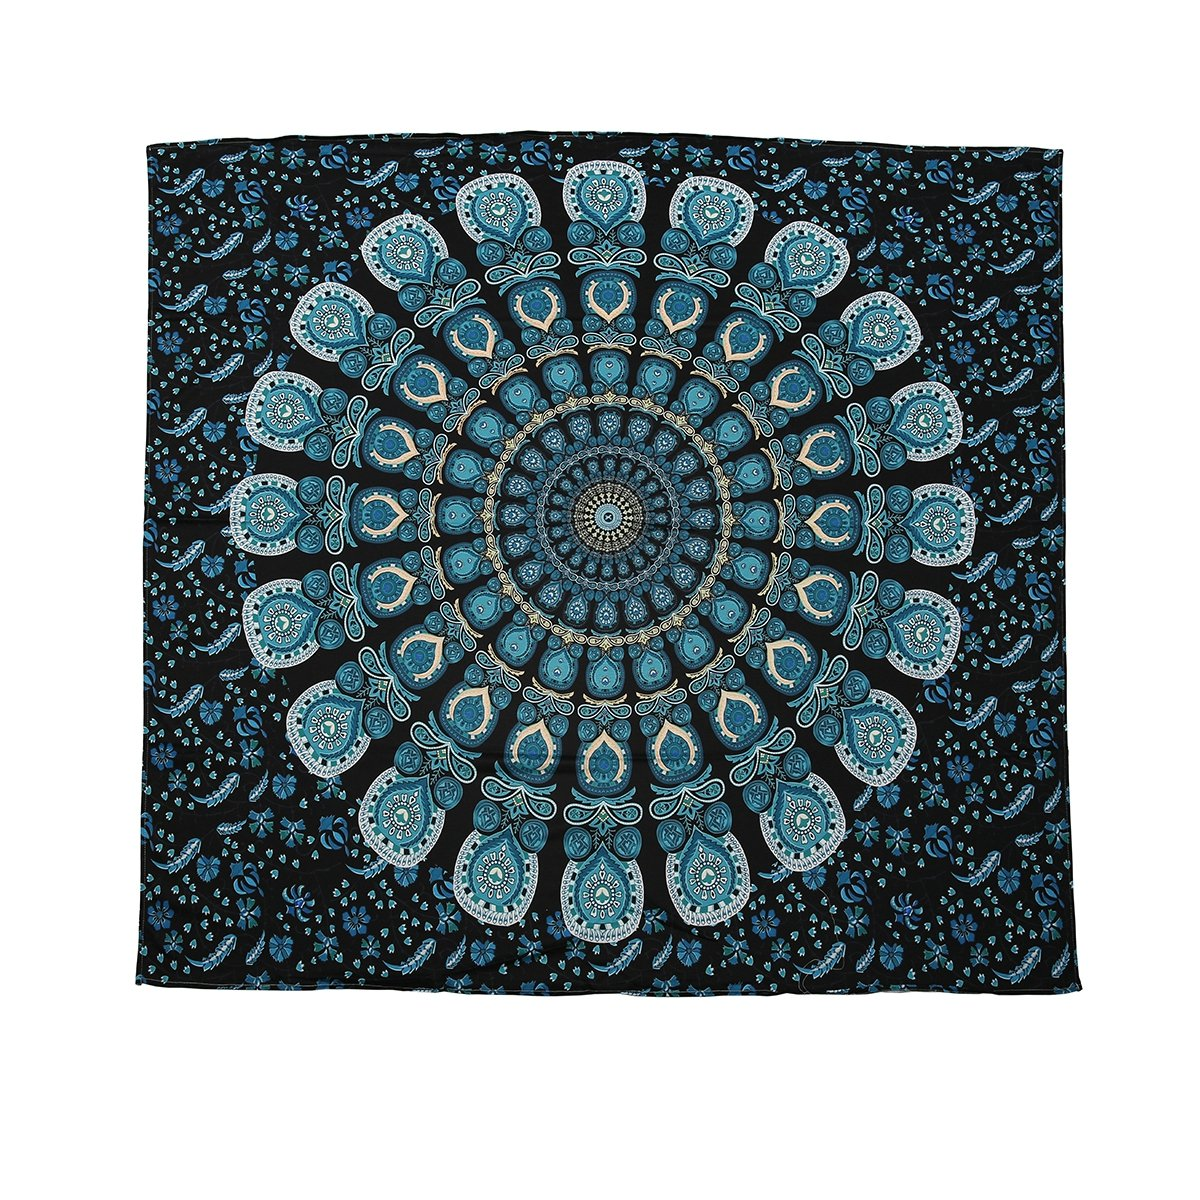 Feather Tapestry Peacock Tapestries Mandala Wall Hanging on SALE